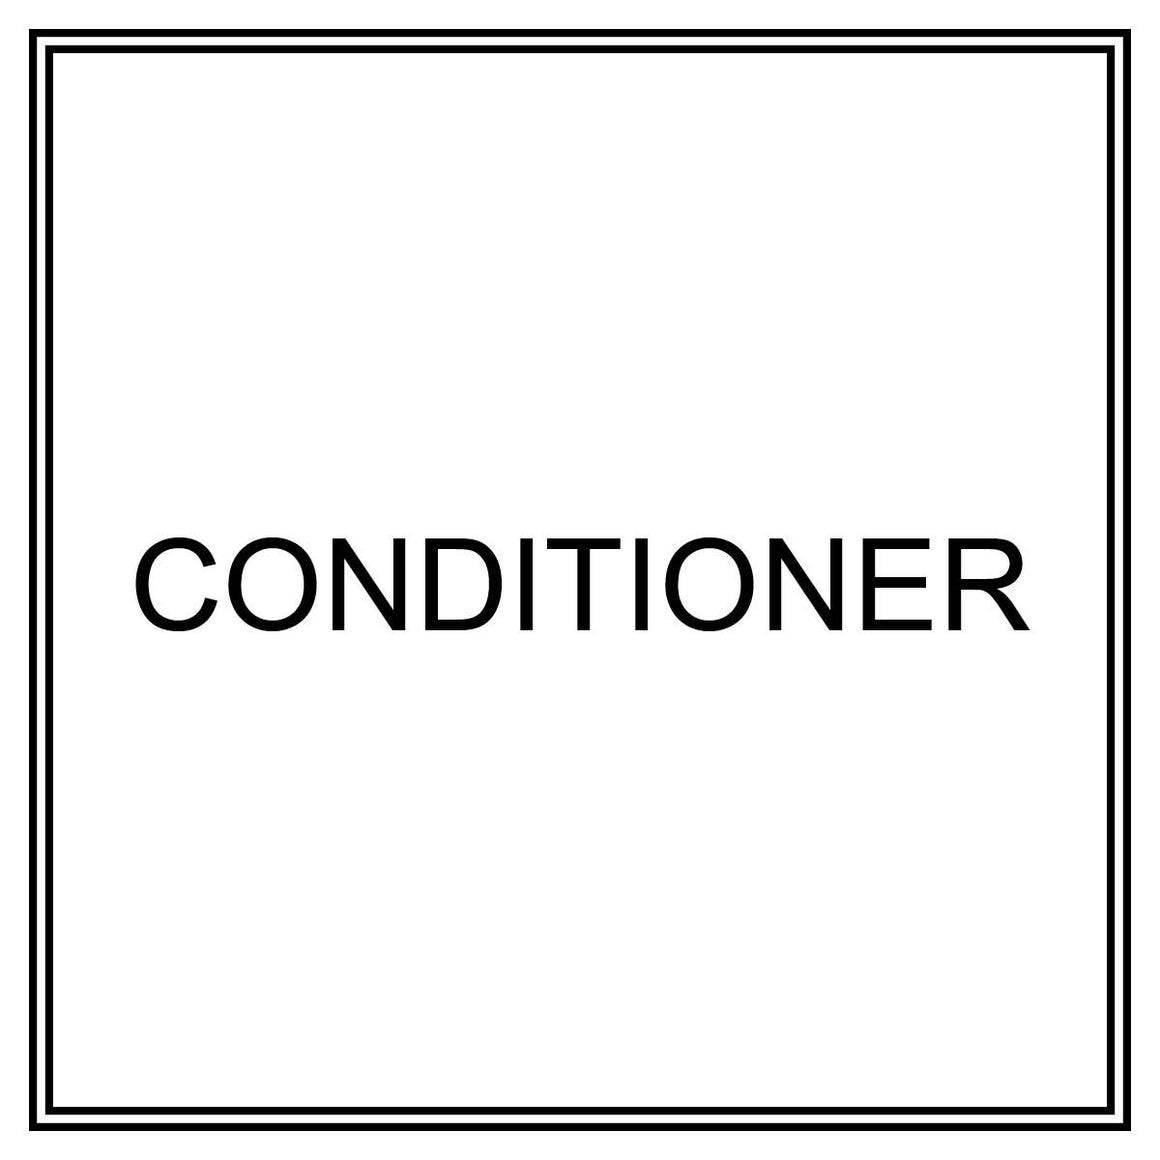 Label - Conditioner